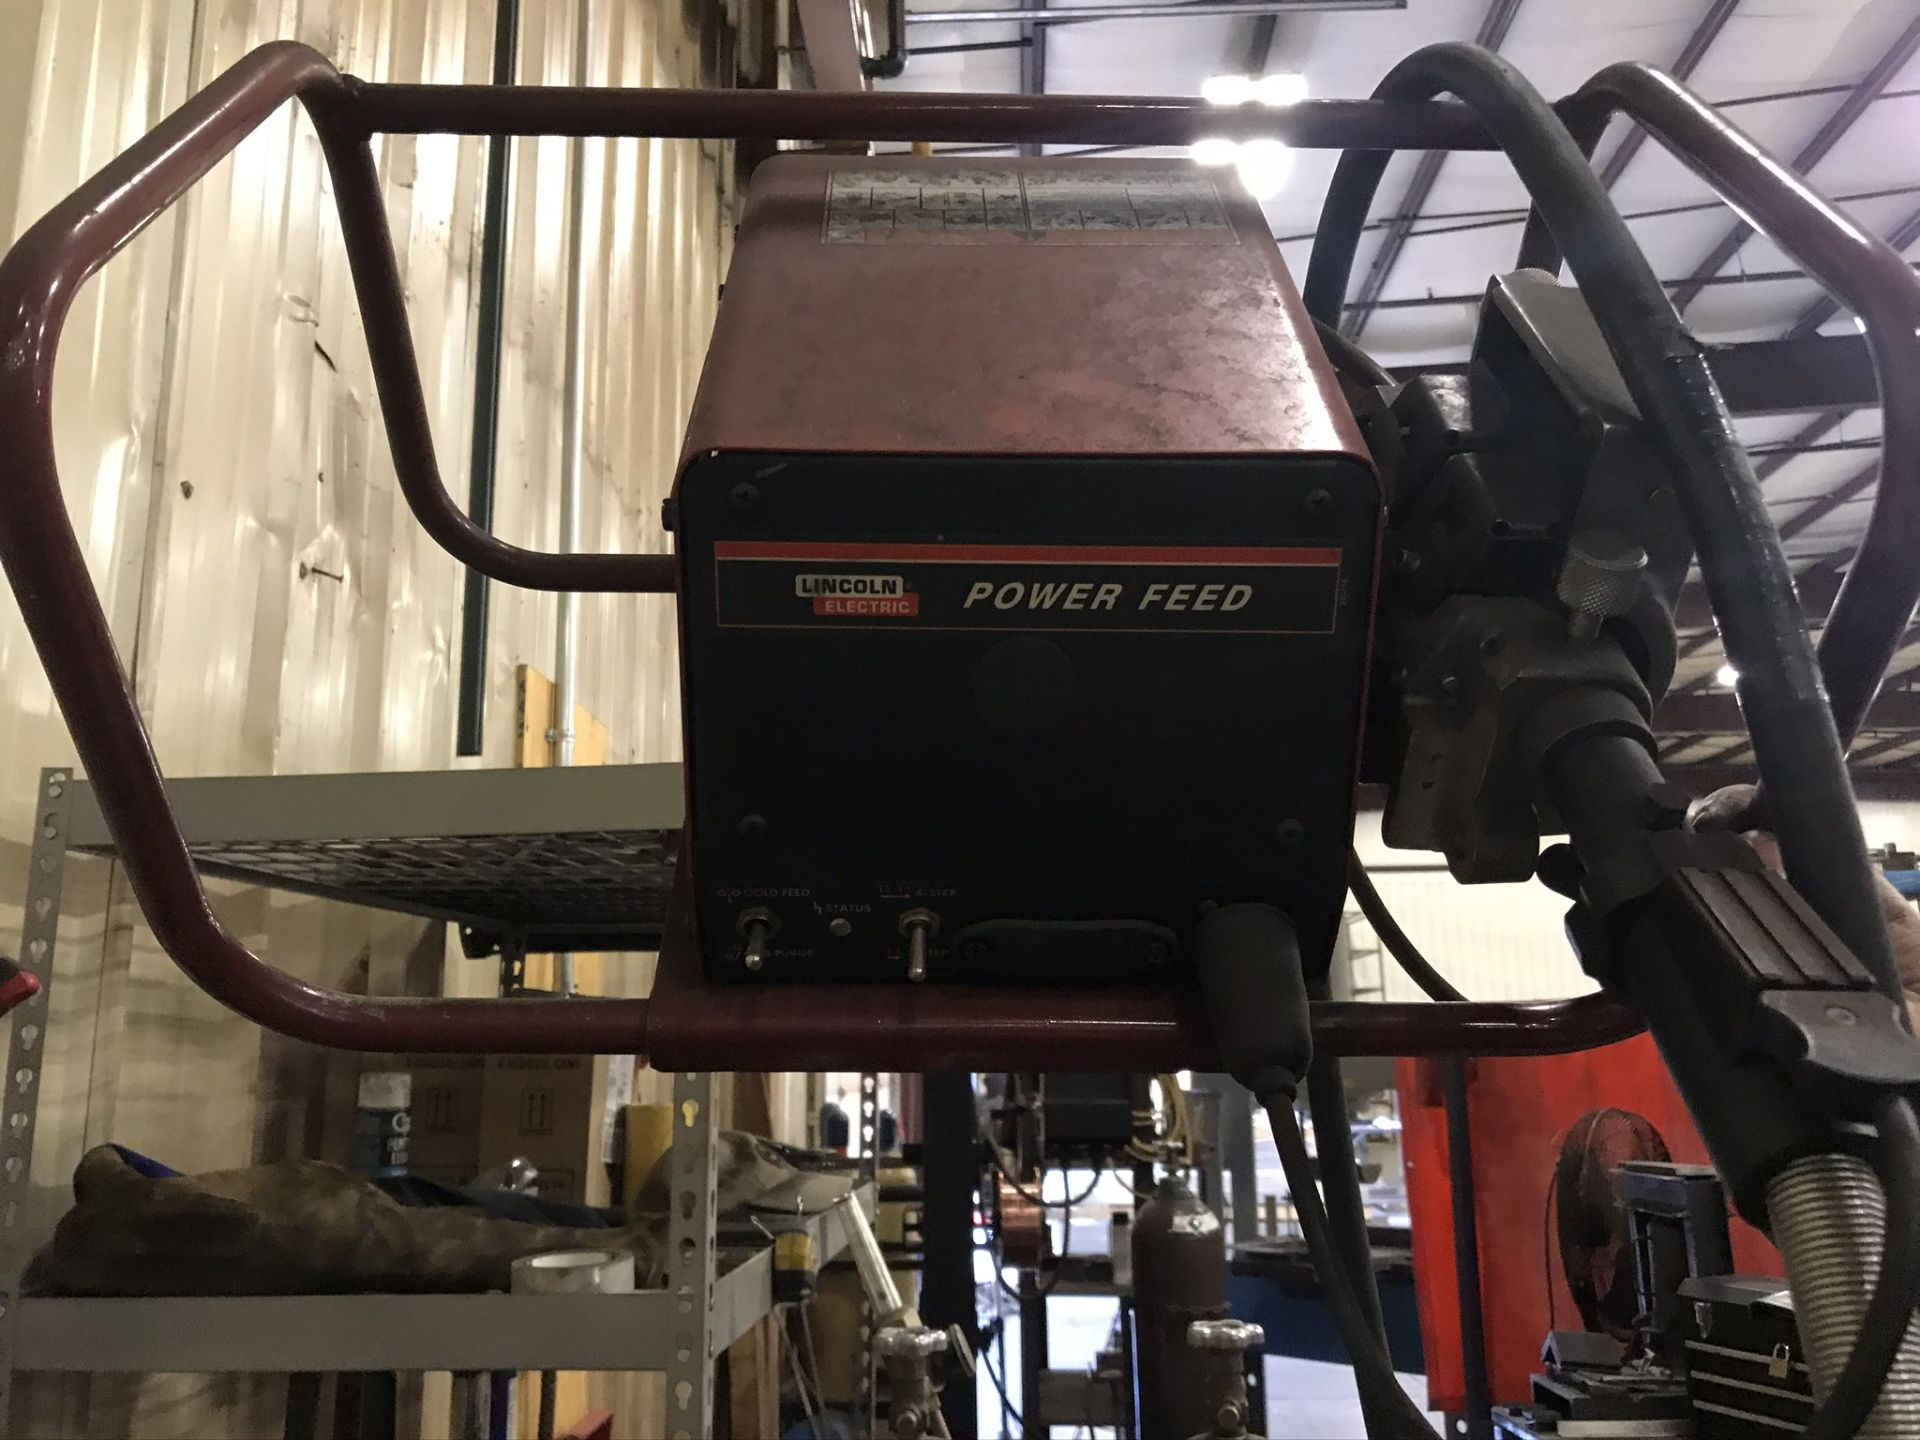 Lincoln Power Wave 455 Welder Complete with Welding Boom Arm and Lincoln Power Feed - Image 6 of 7